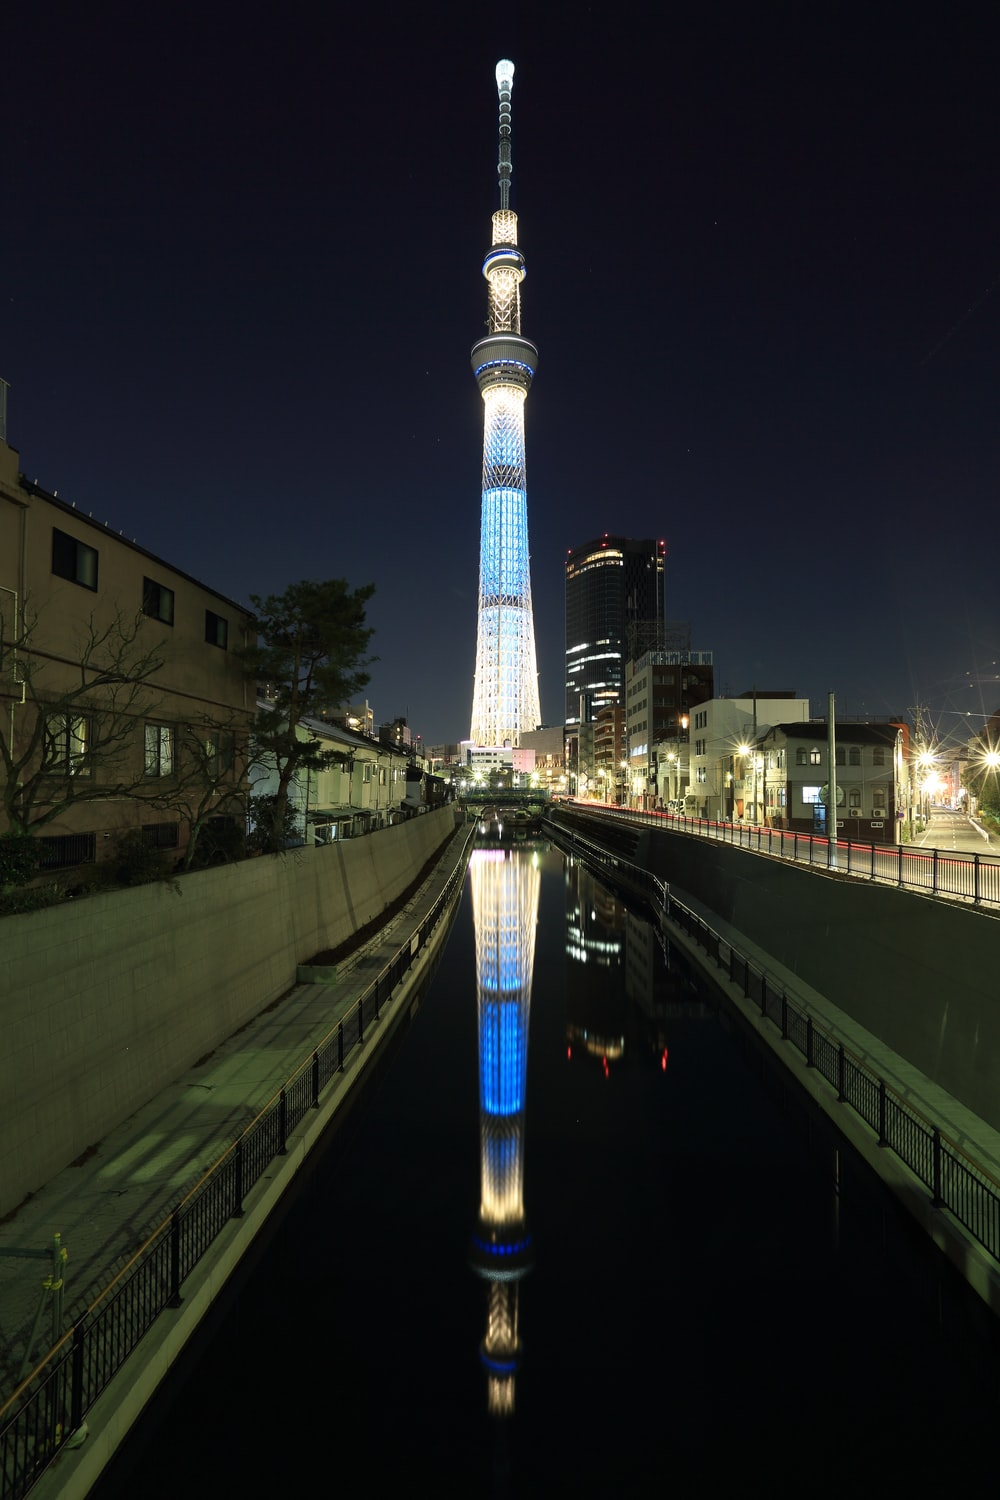 blue and white lighted tower during night time